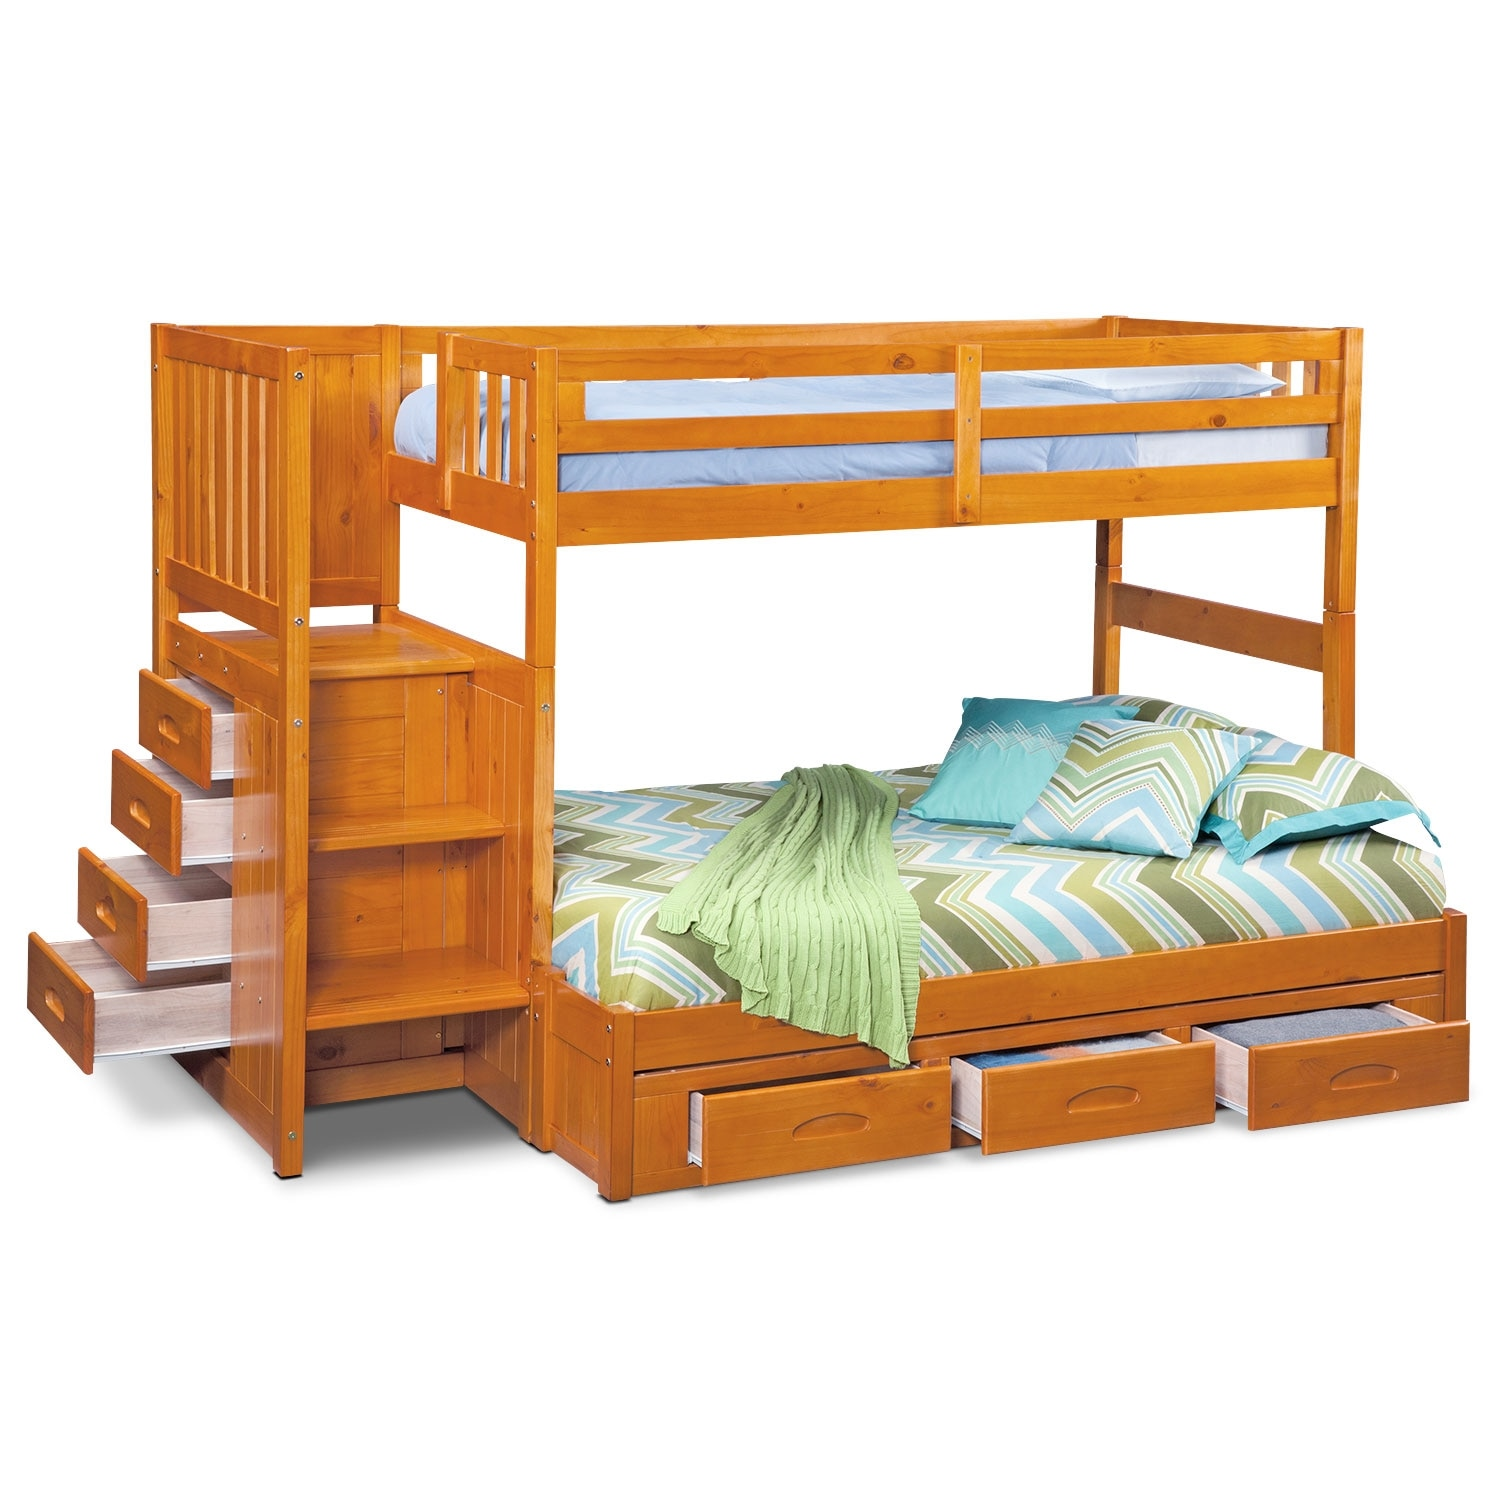 Ranger twin over full bunk bed with storage stairs underbed drawers pine value city furniture - Loft bed with drawer stairs ...